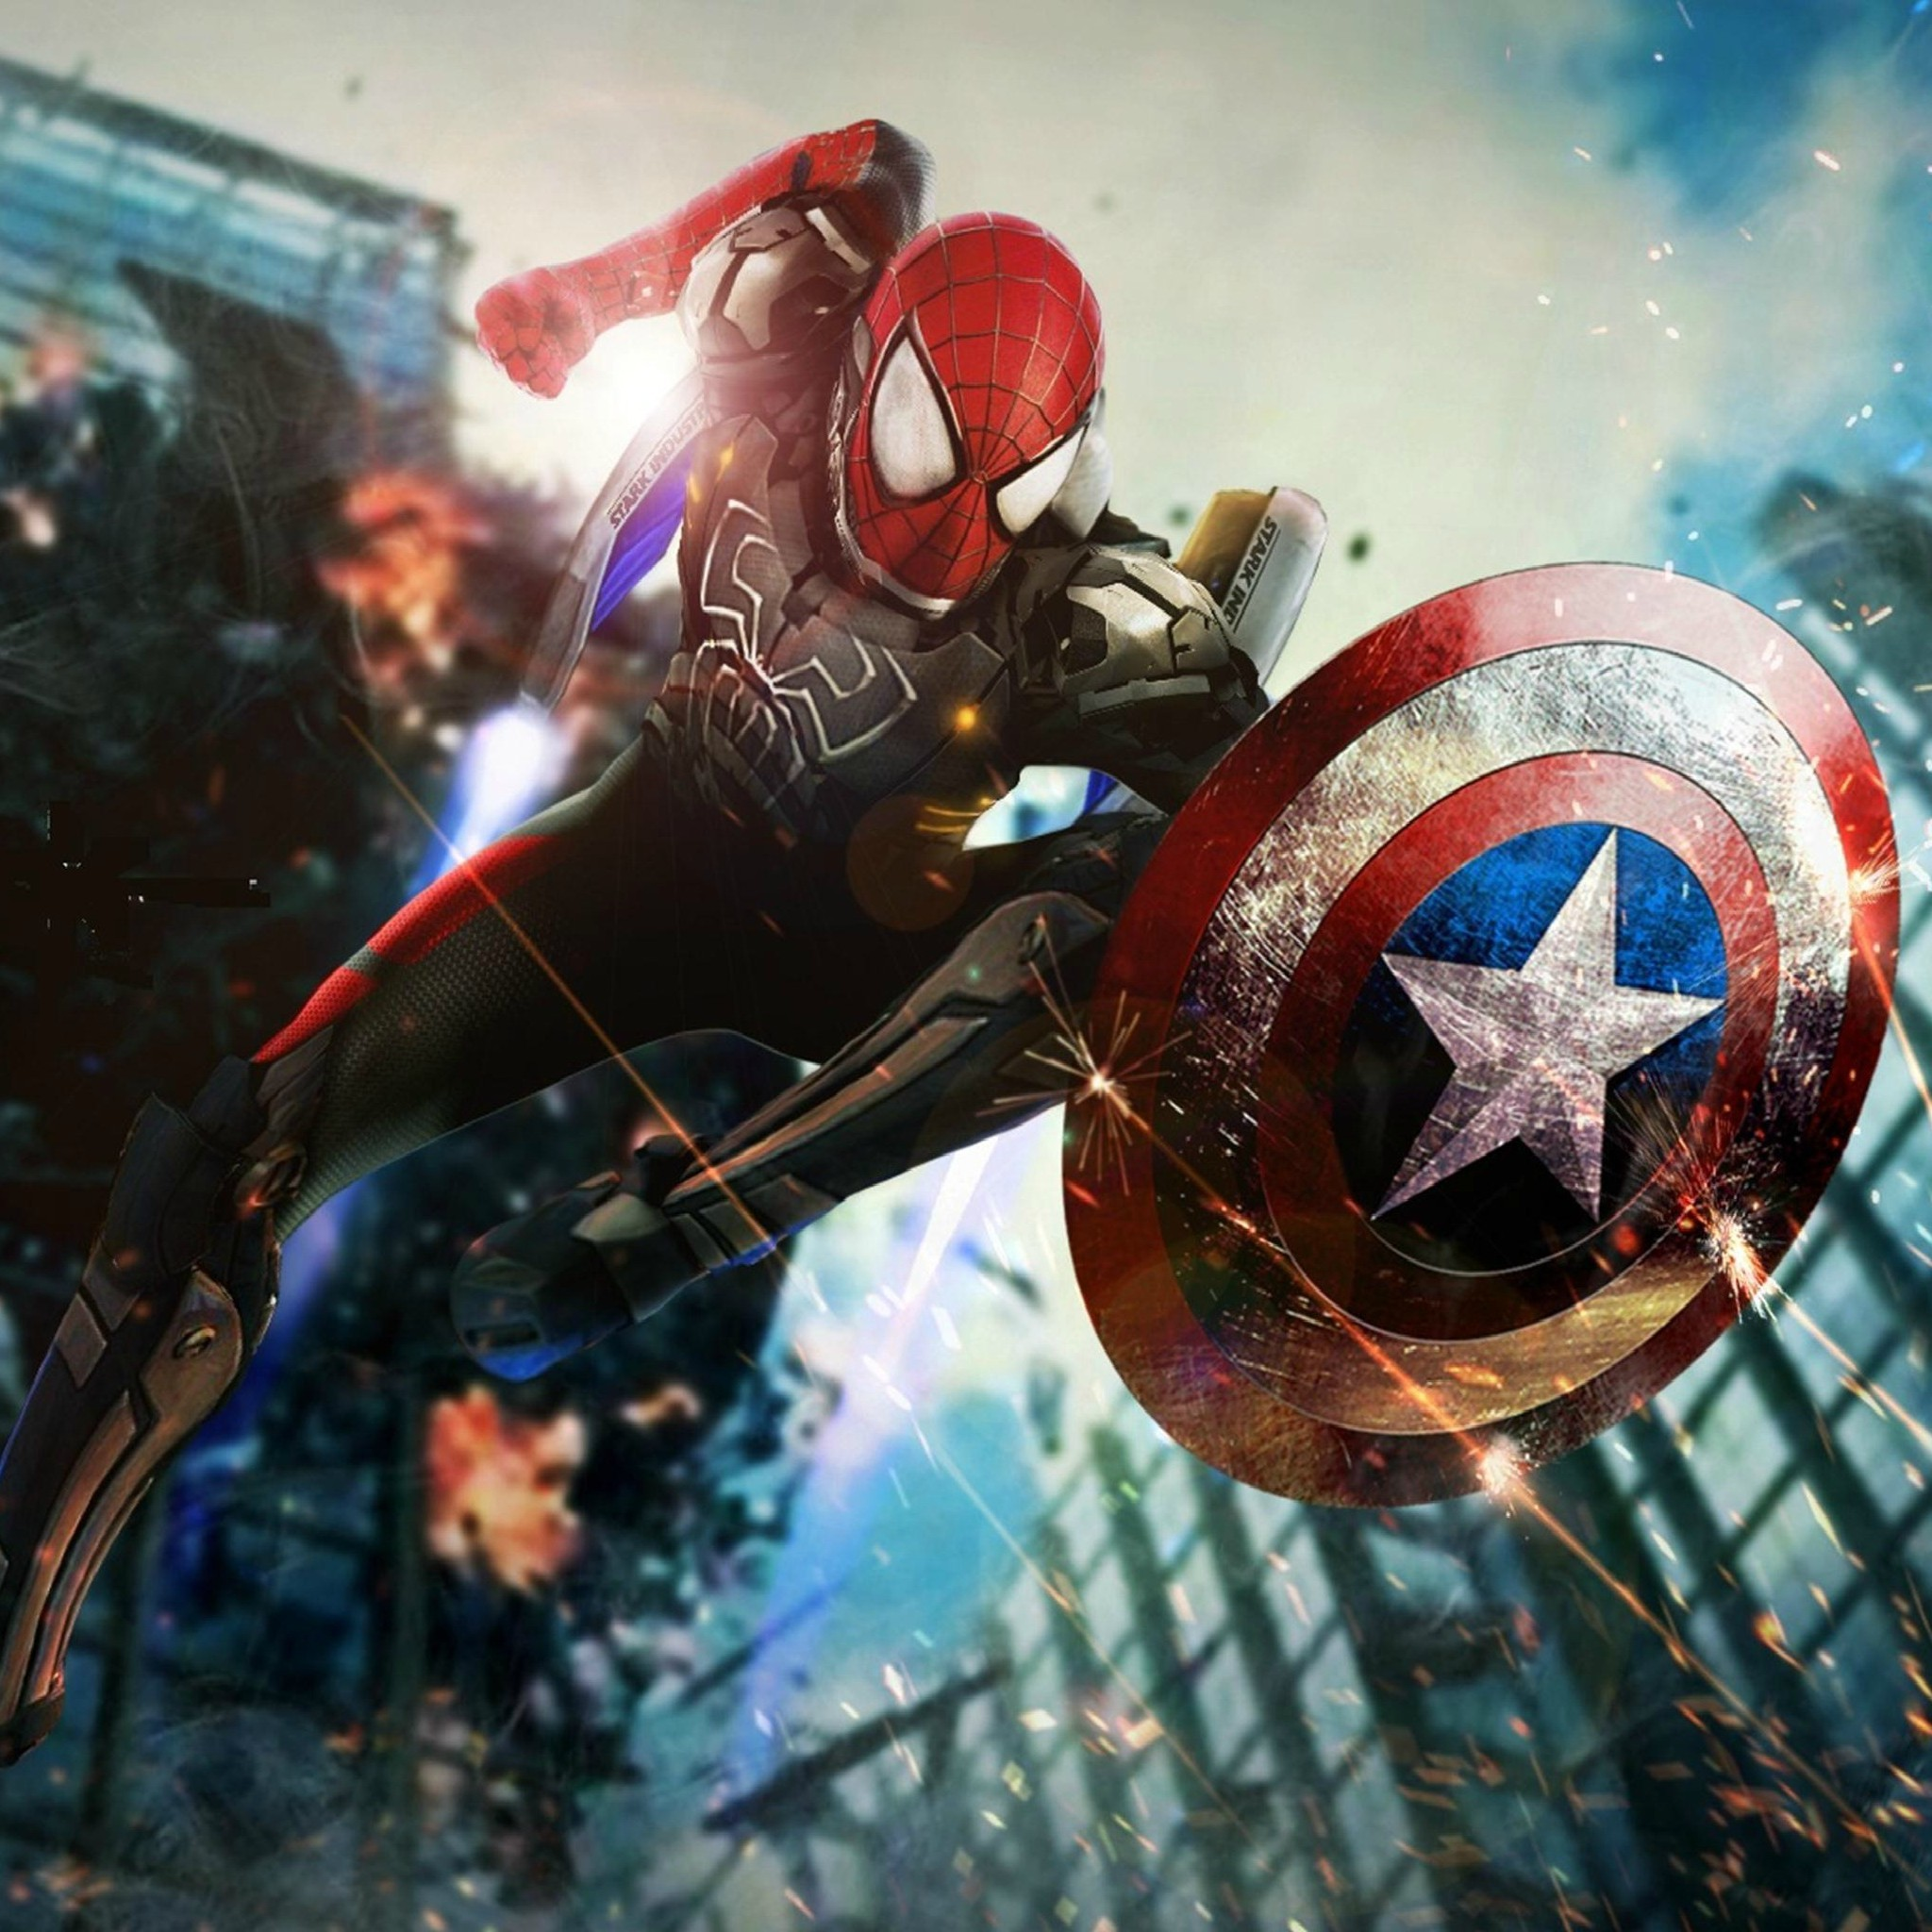 Spiderman wallpaper 73 images - Iron man spiderman wallpaper ...